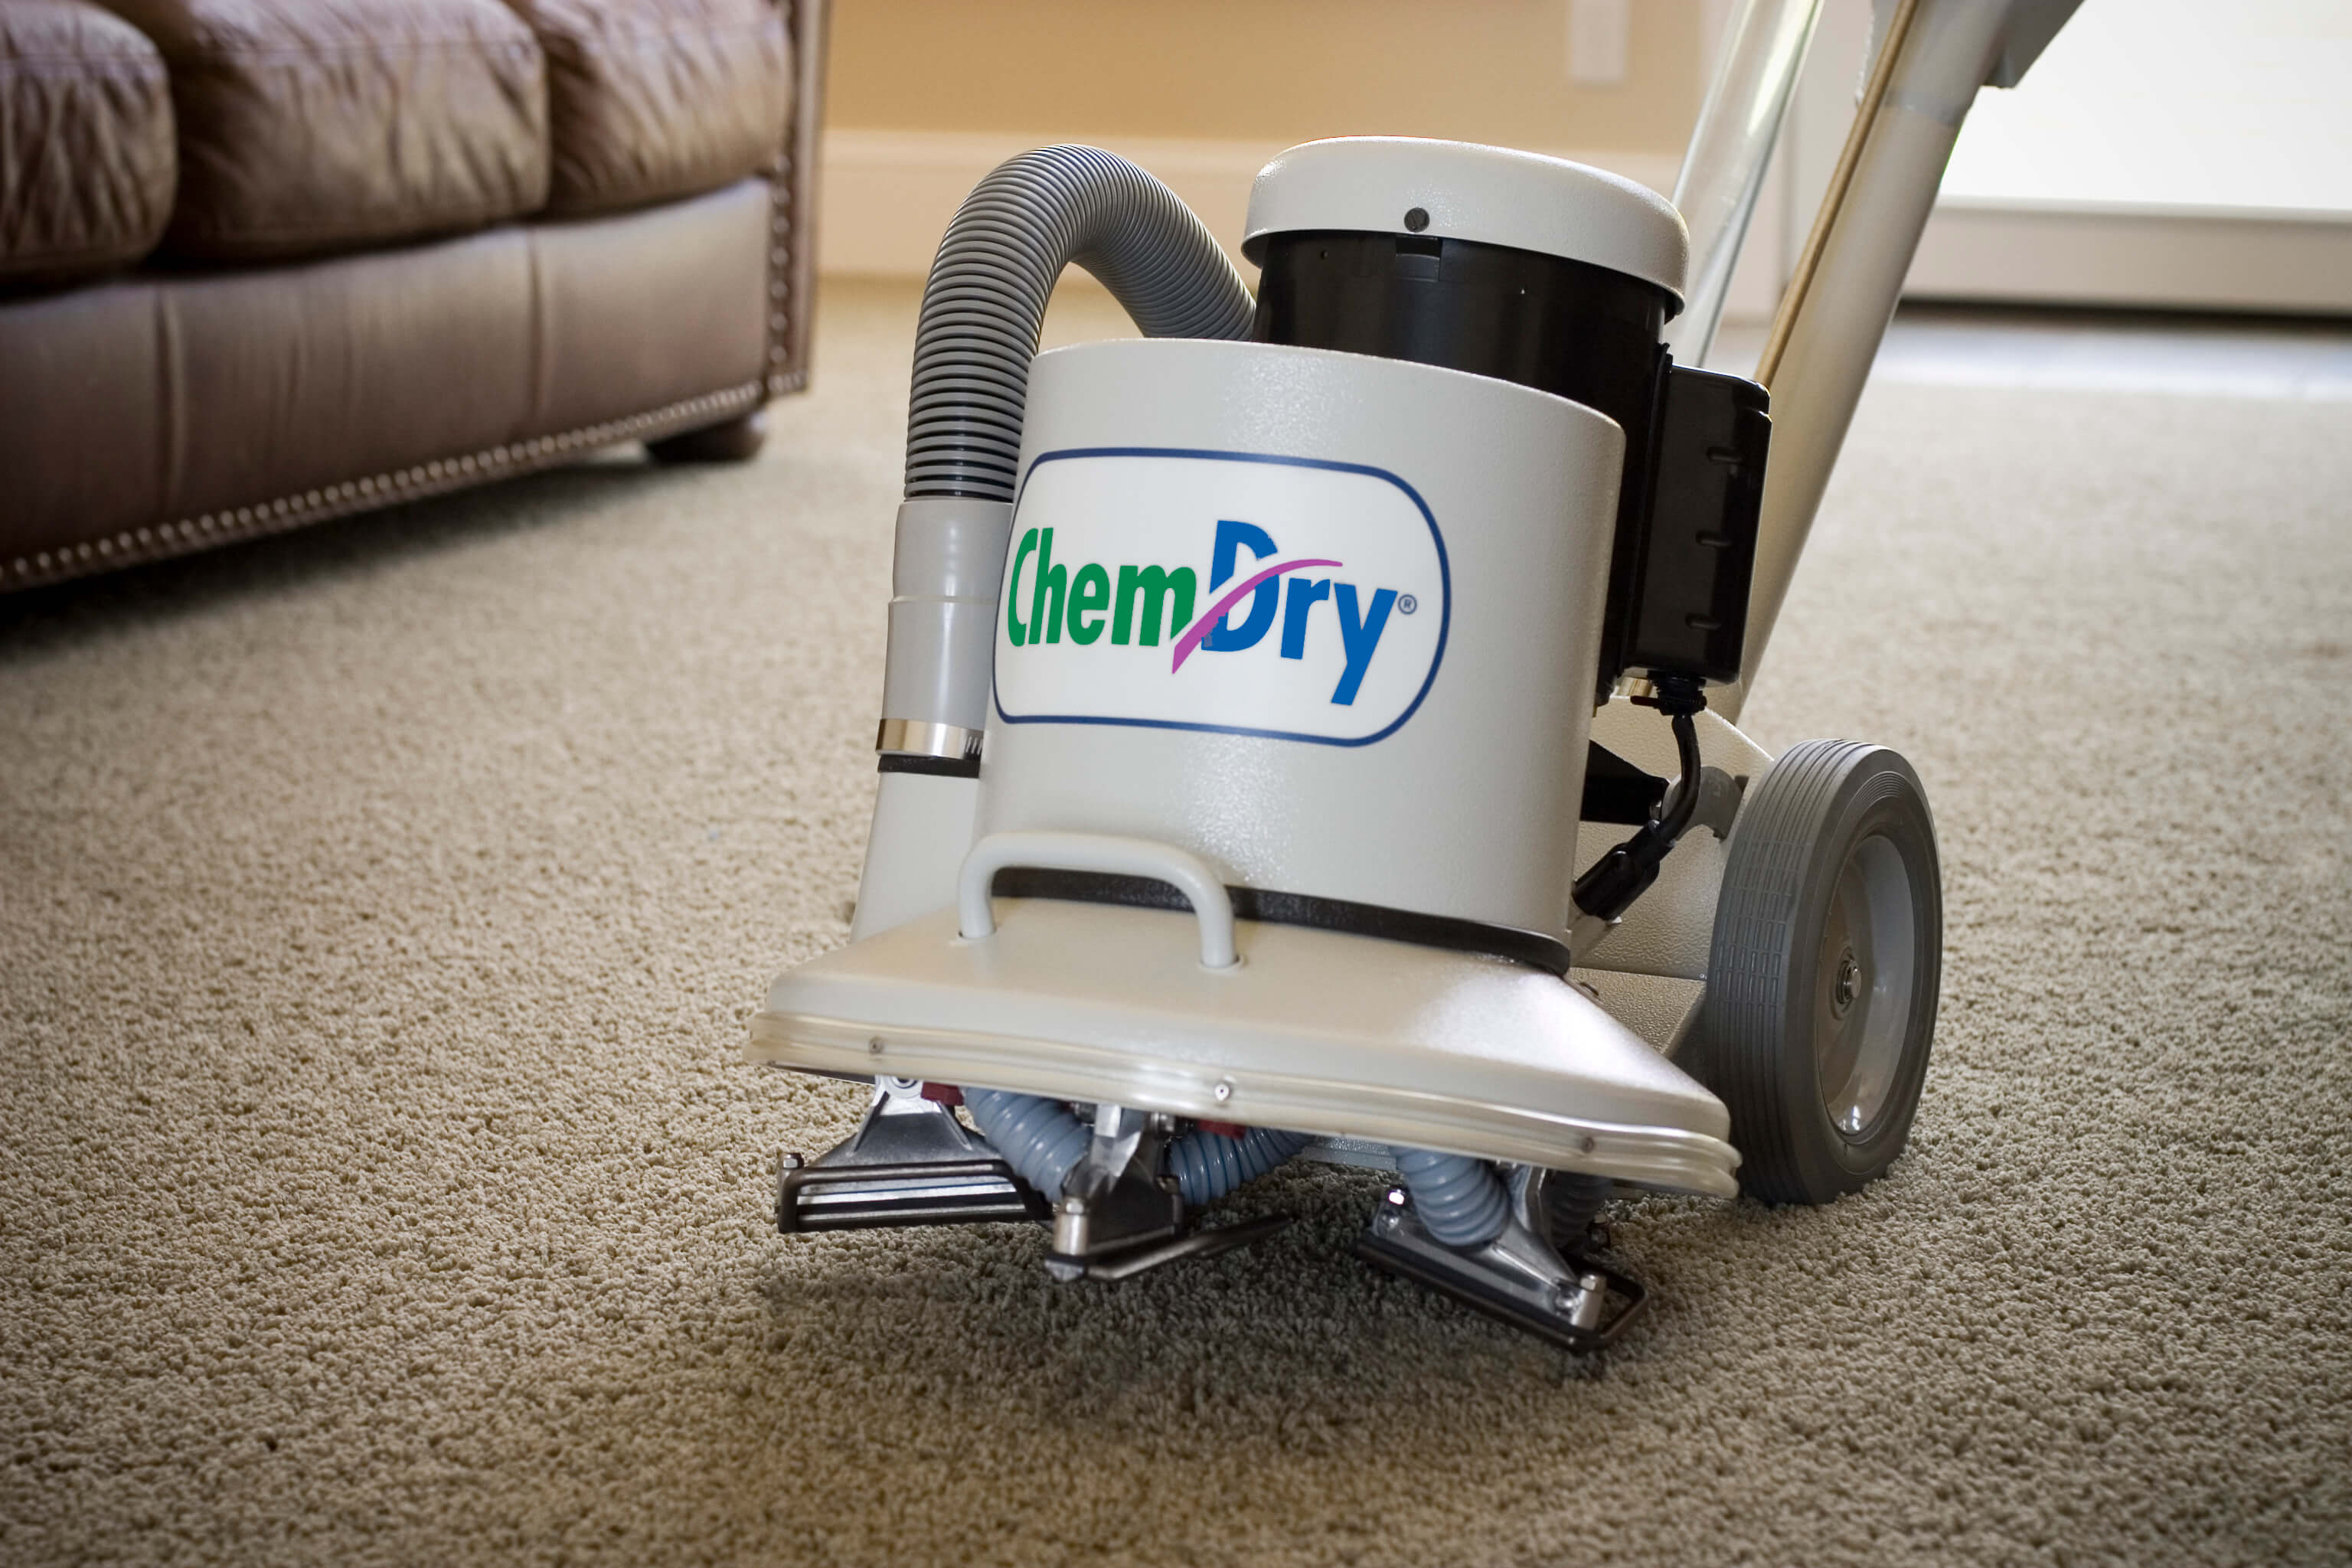 chem-dry carpet cleaning equipment